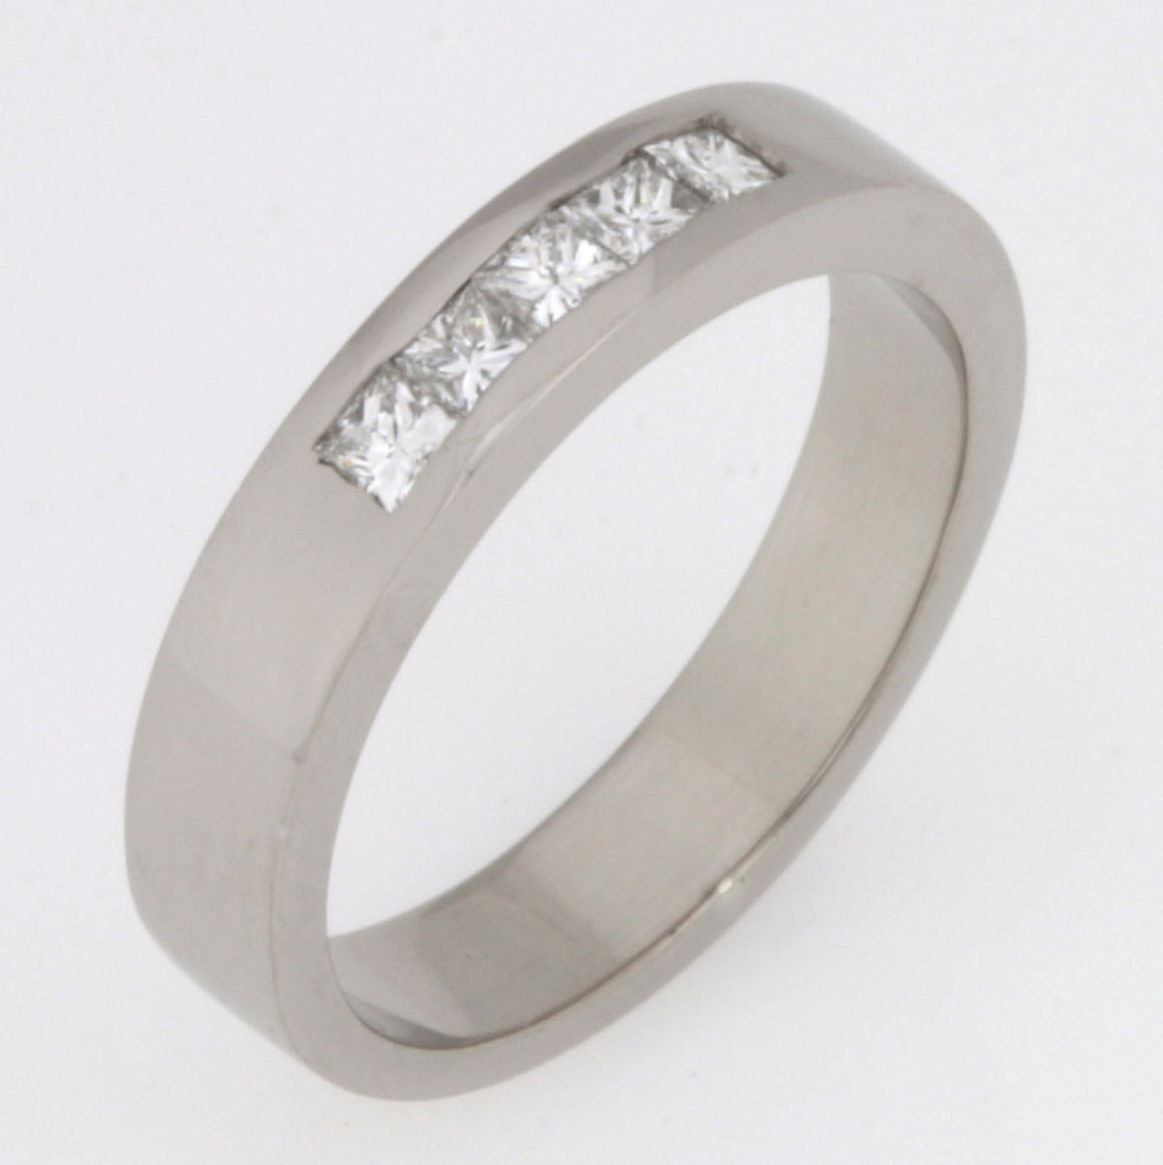 Handmade 18ct white gold diamond wedding ring